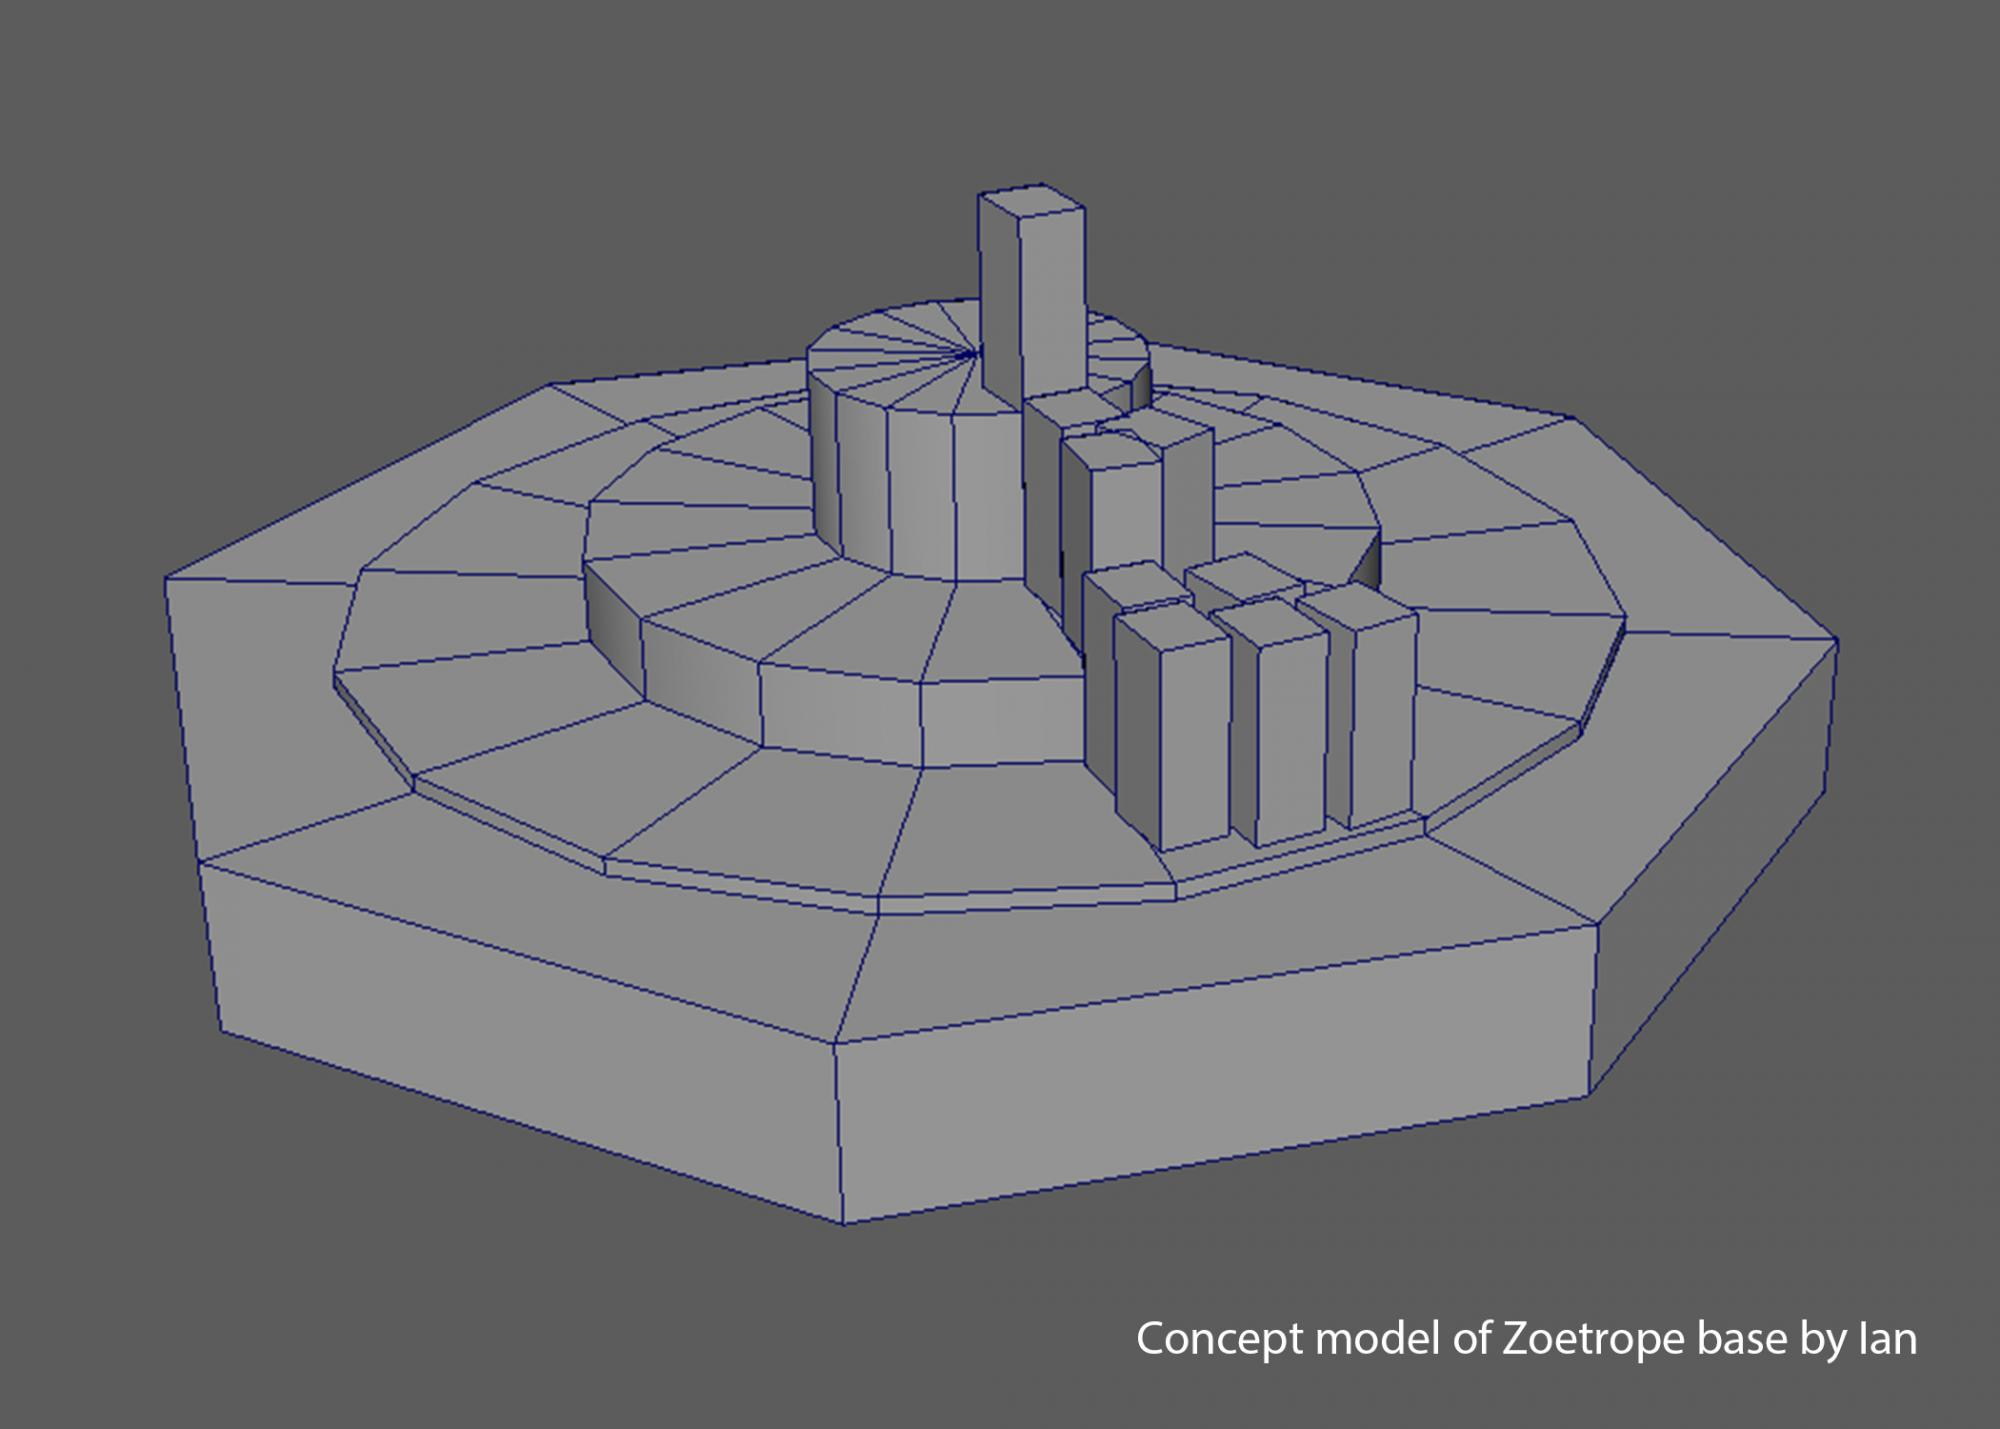 Concept model of Zoetrope base by Ian House